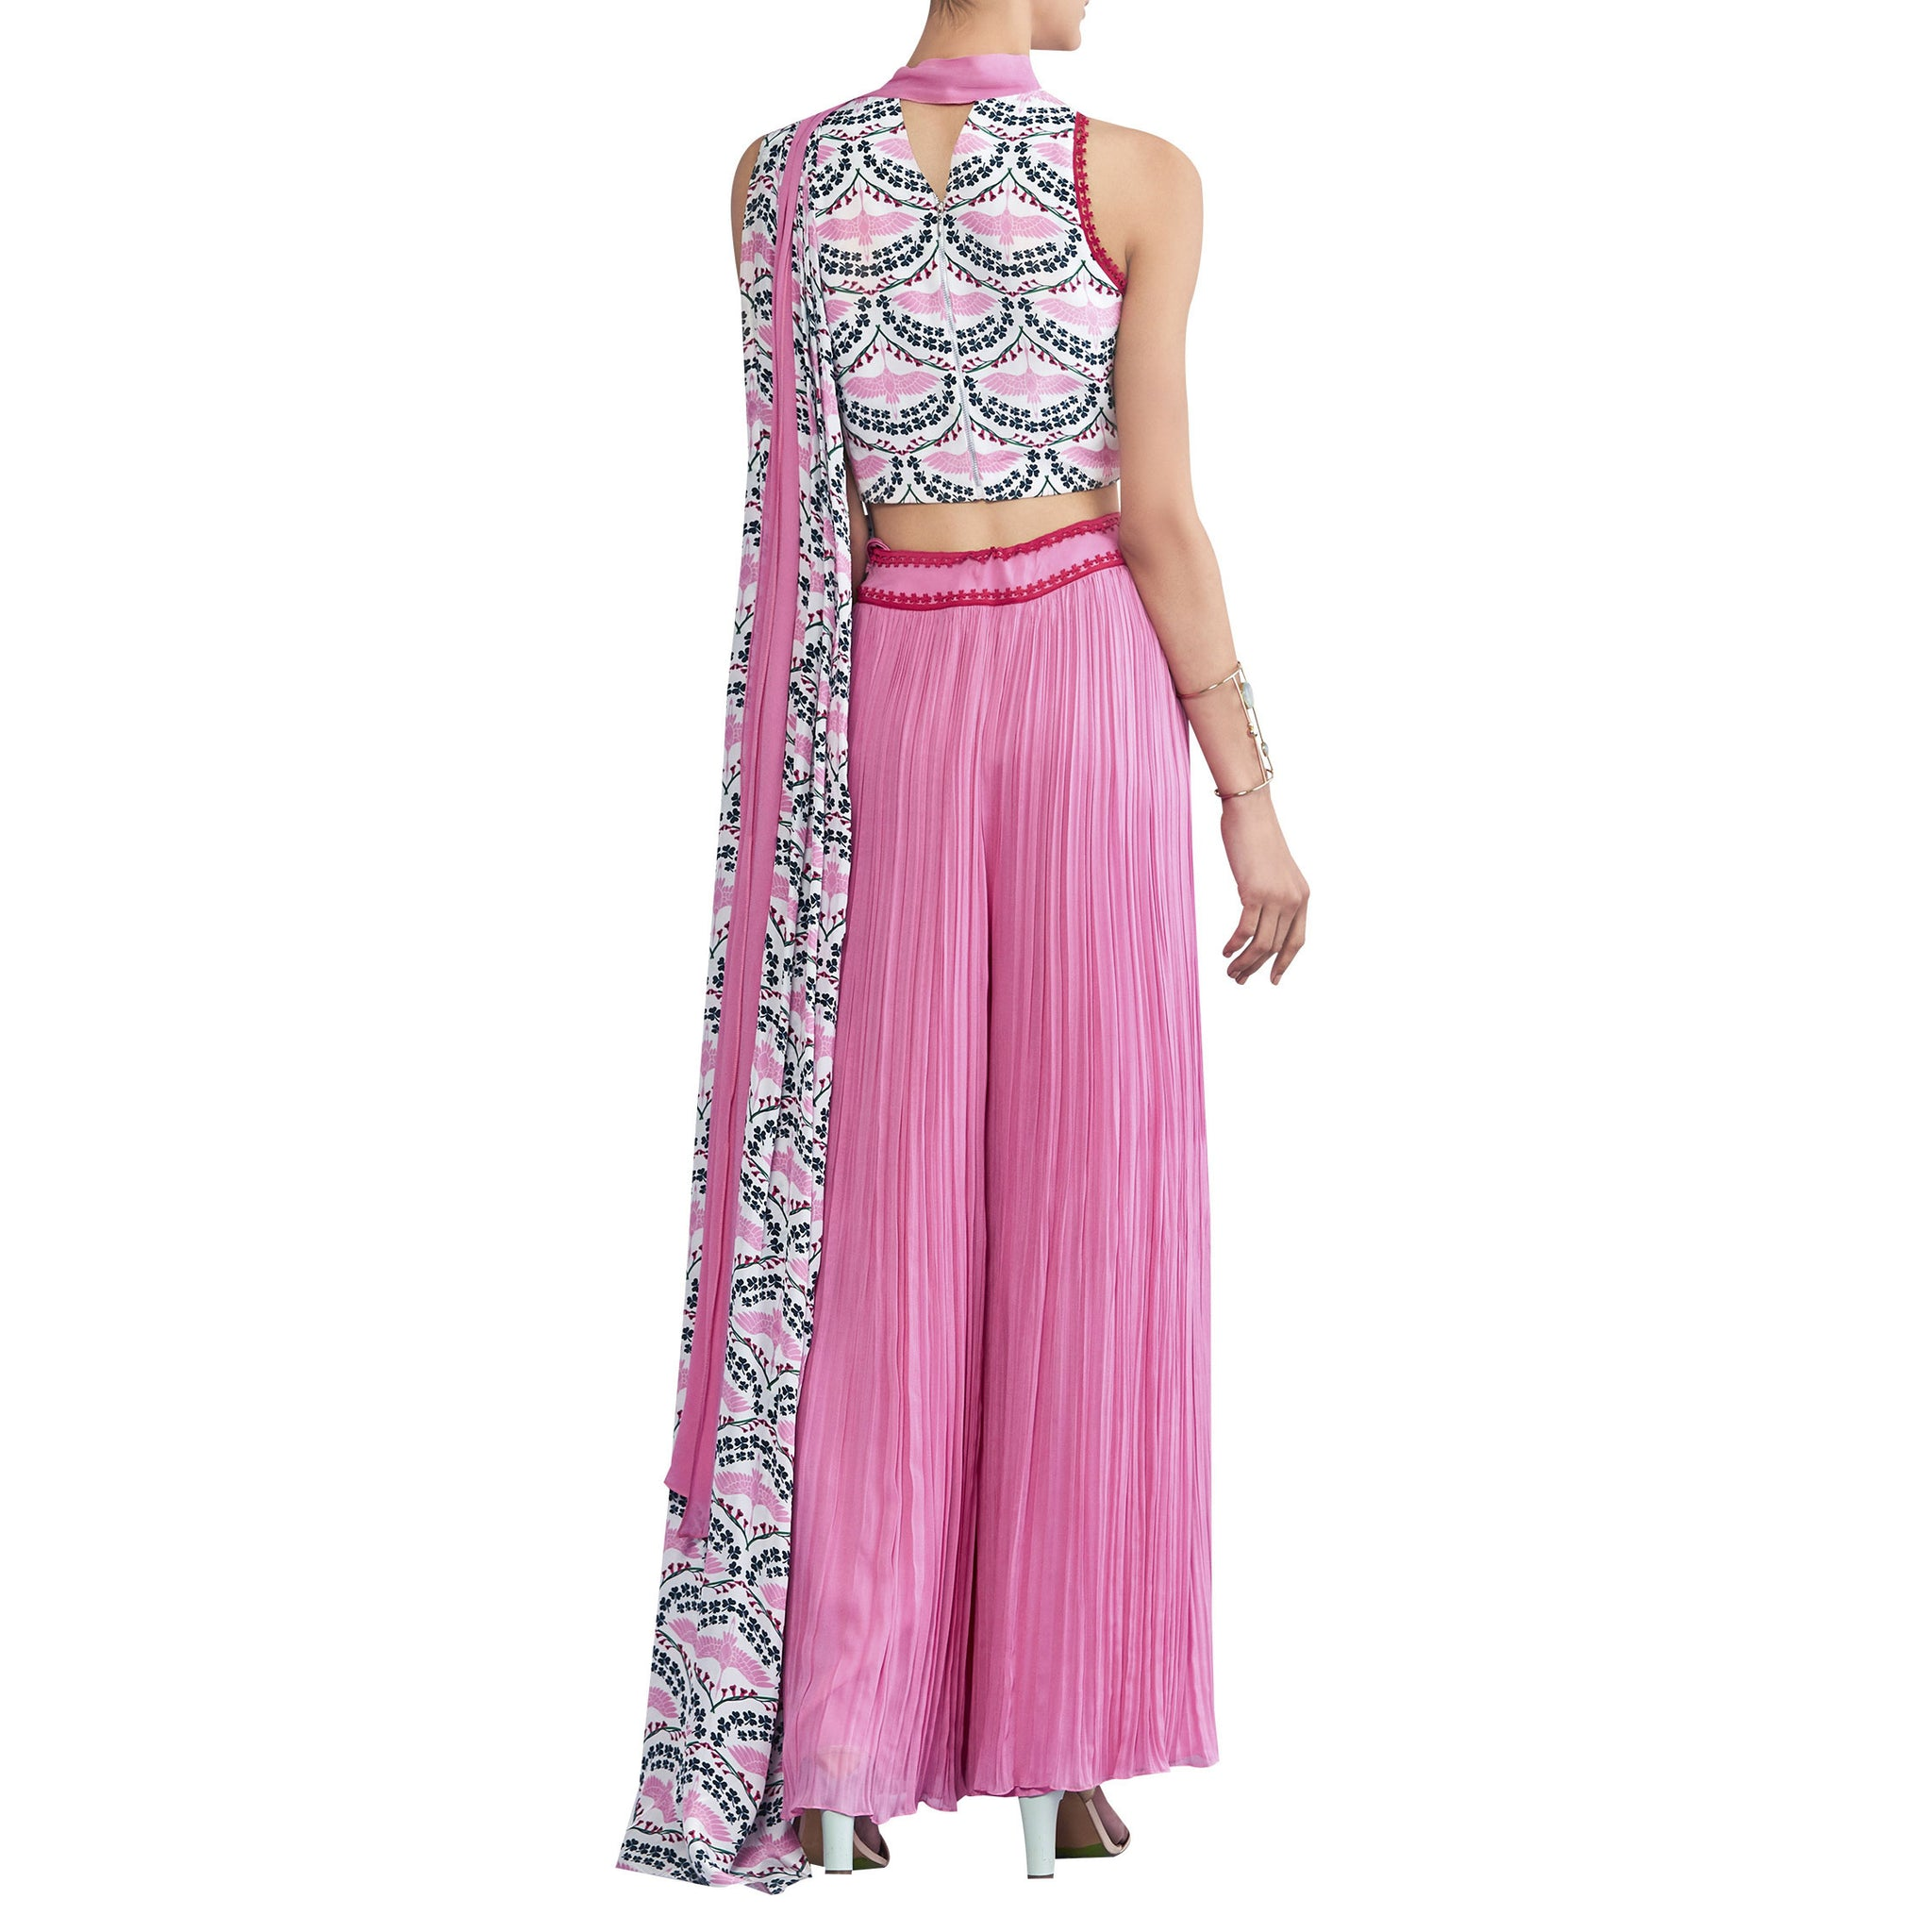 Embroidered Top with Sari Inspired Pants